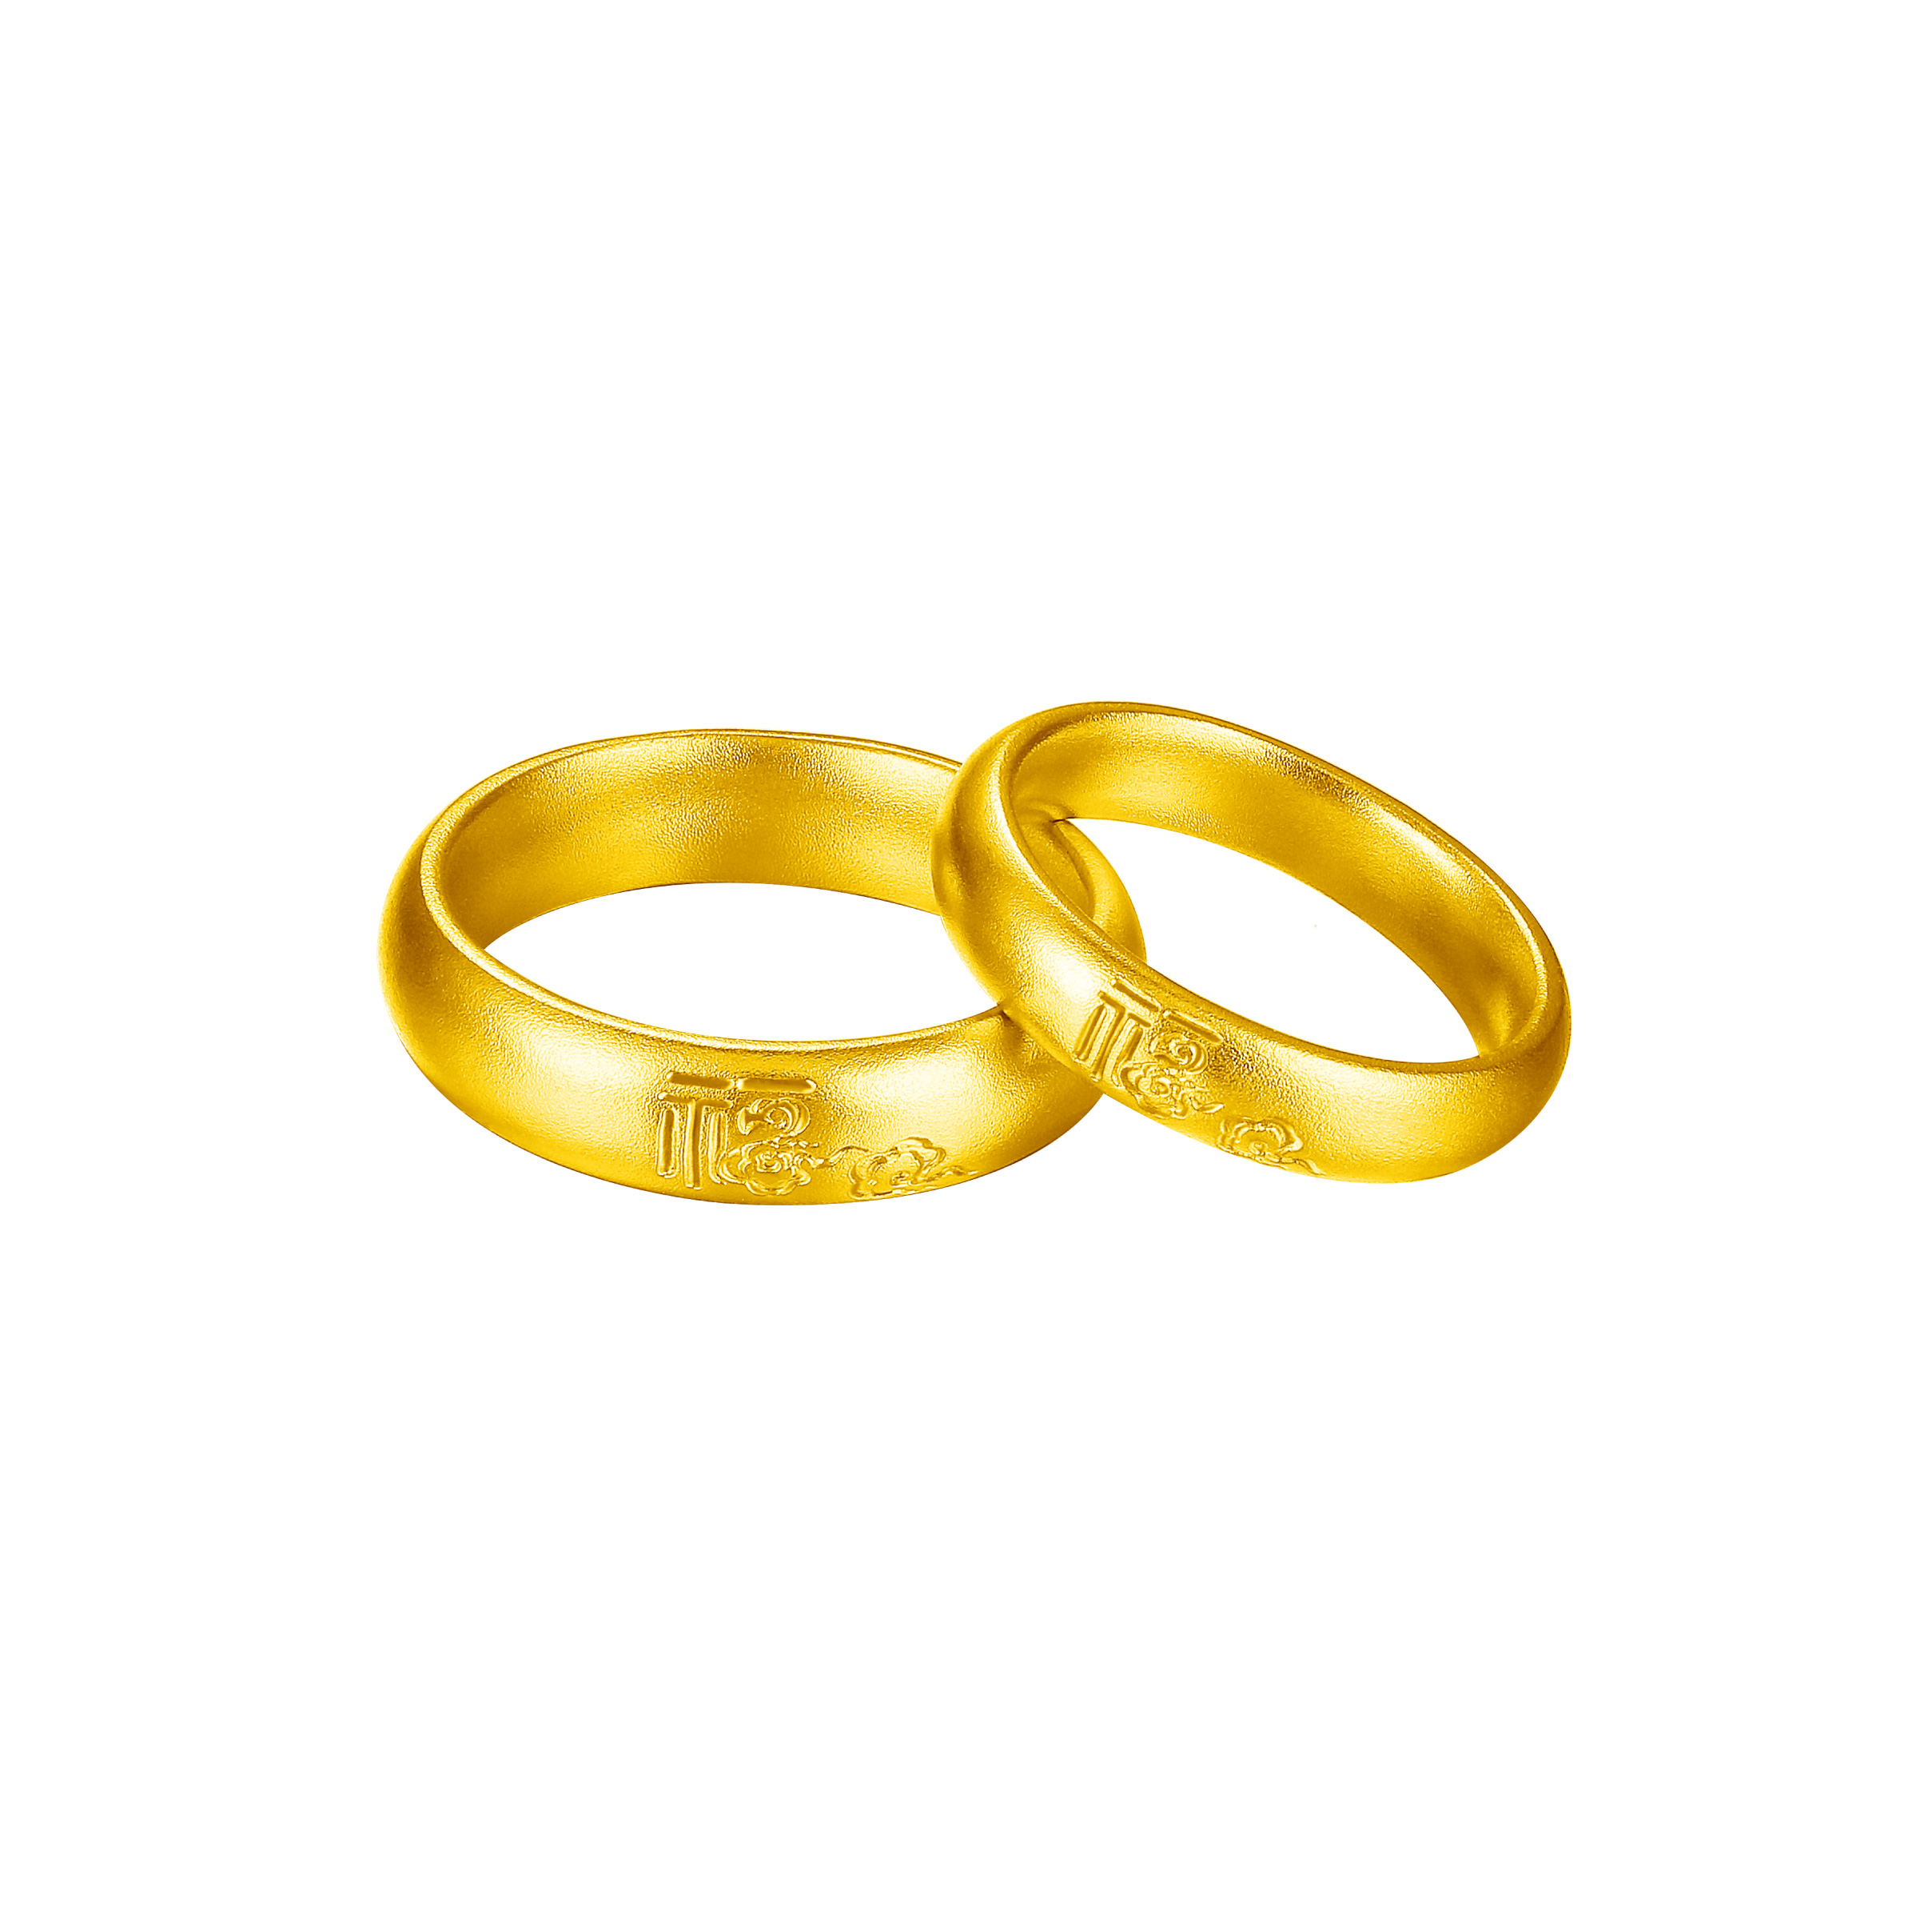 Antique Gold「瑞福」Gold Ring